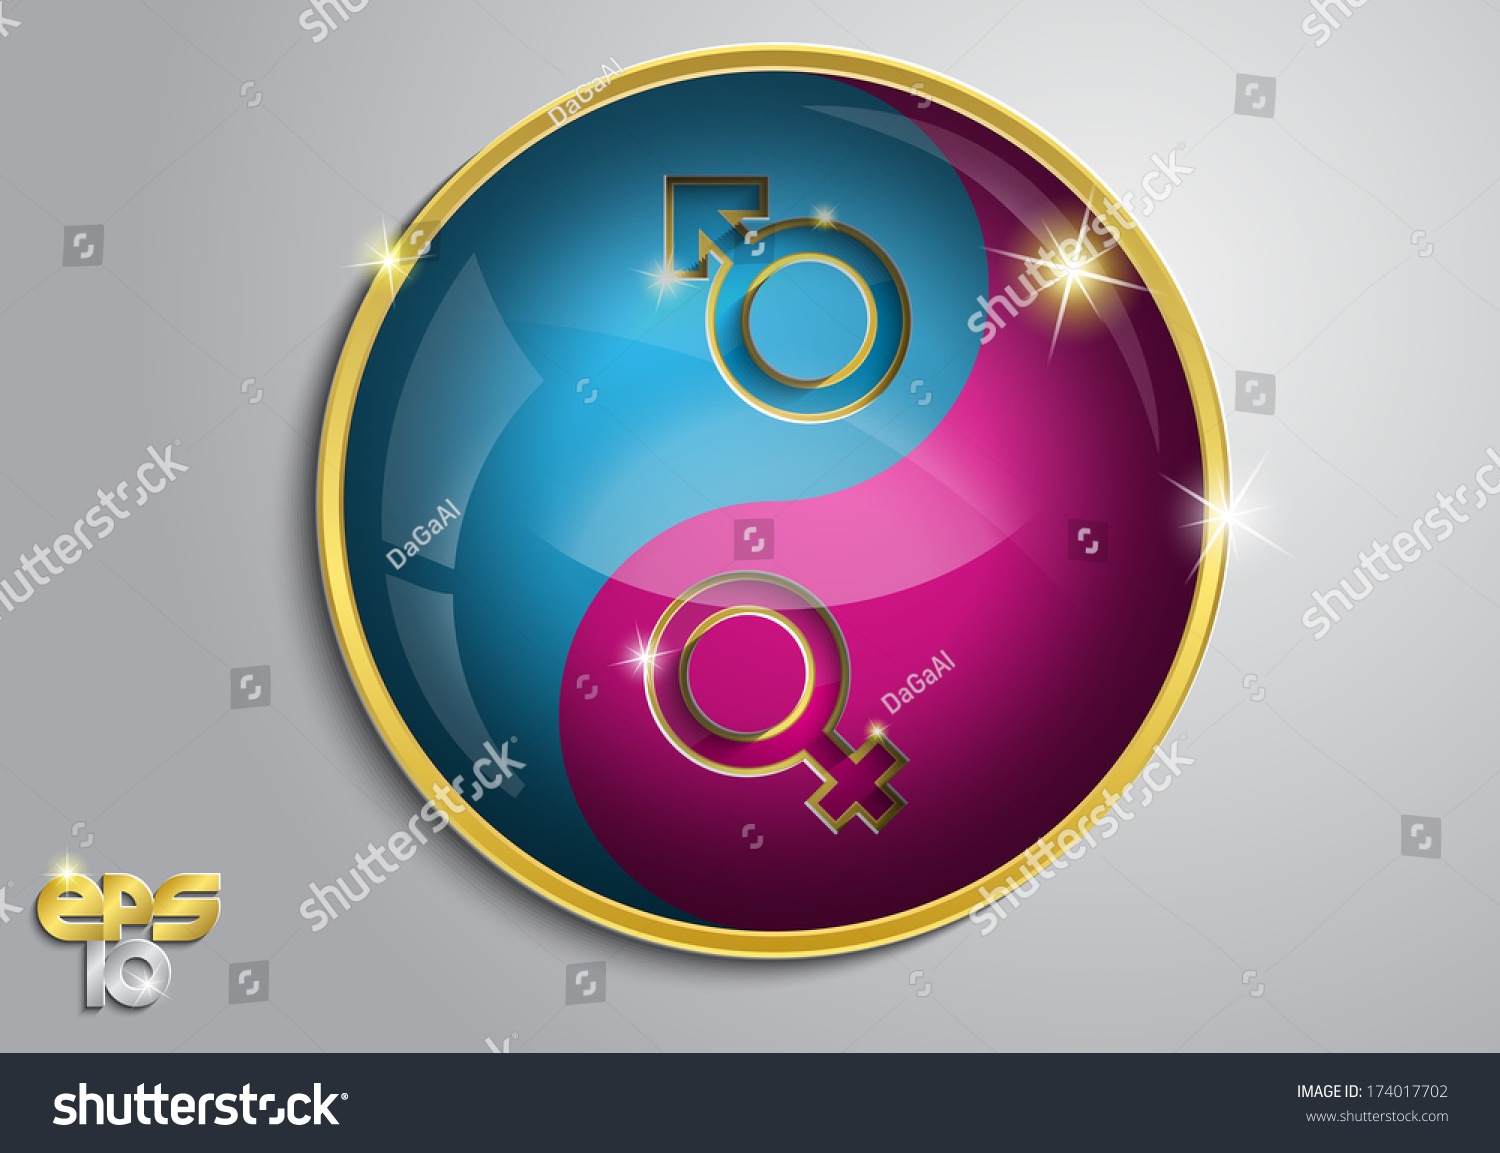 Pink Blue Symbol Male Female Sign Stock Vector 174017702 Shutterstock